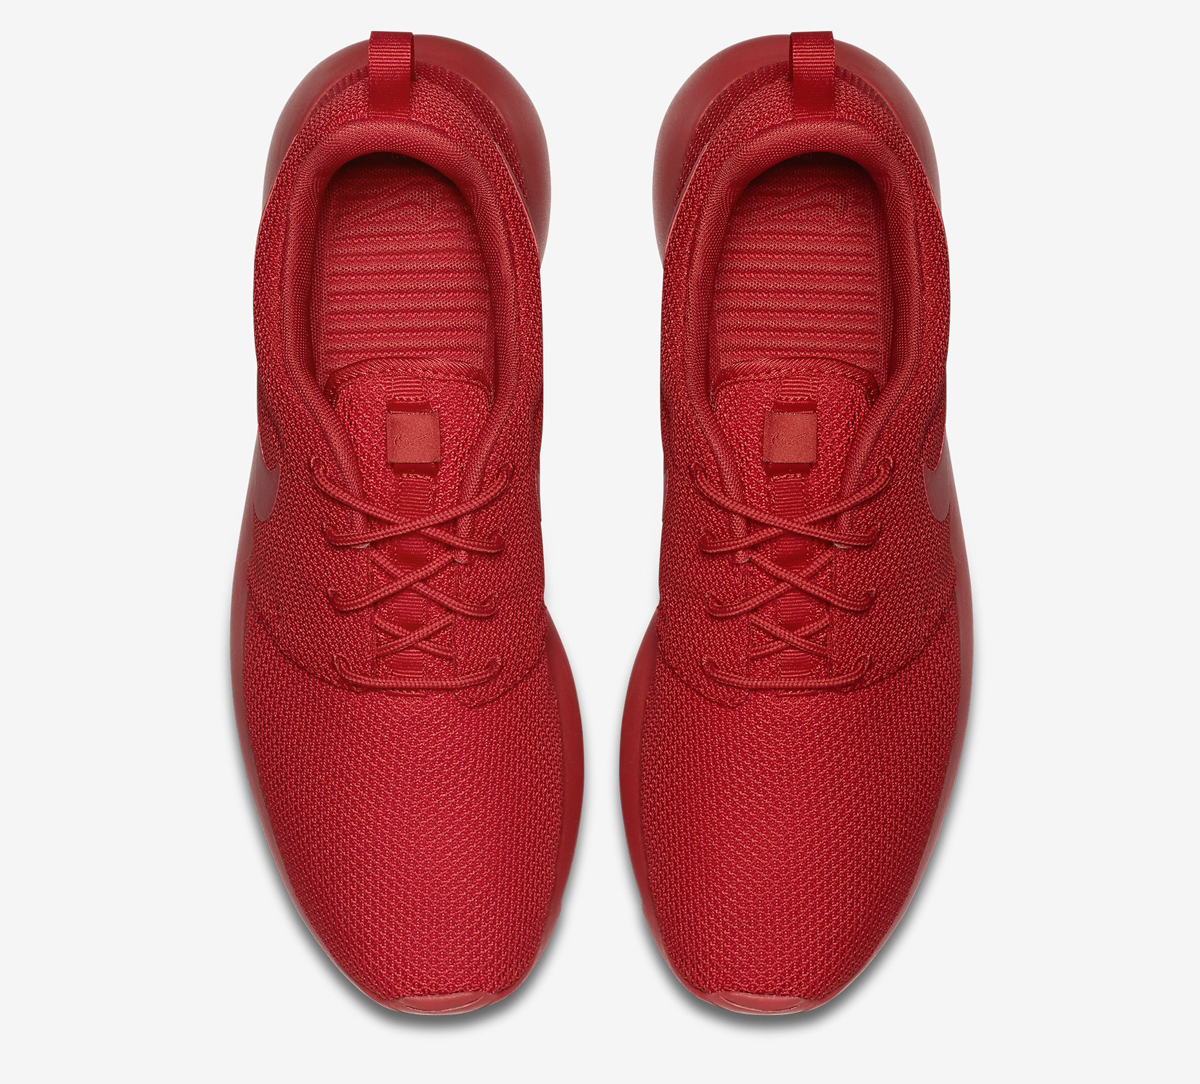 all red nikes